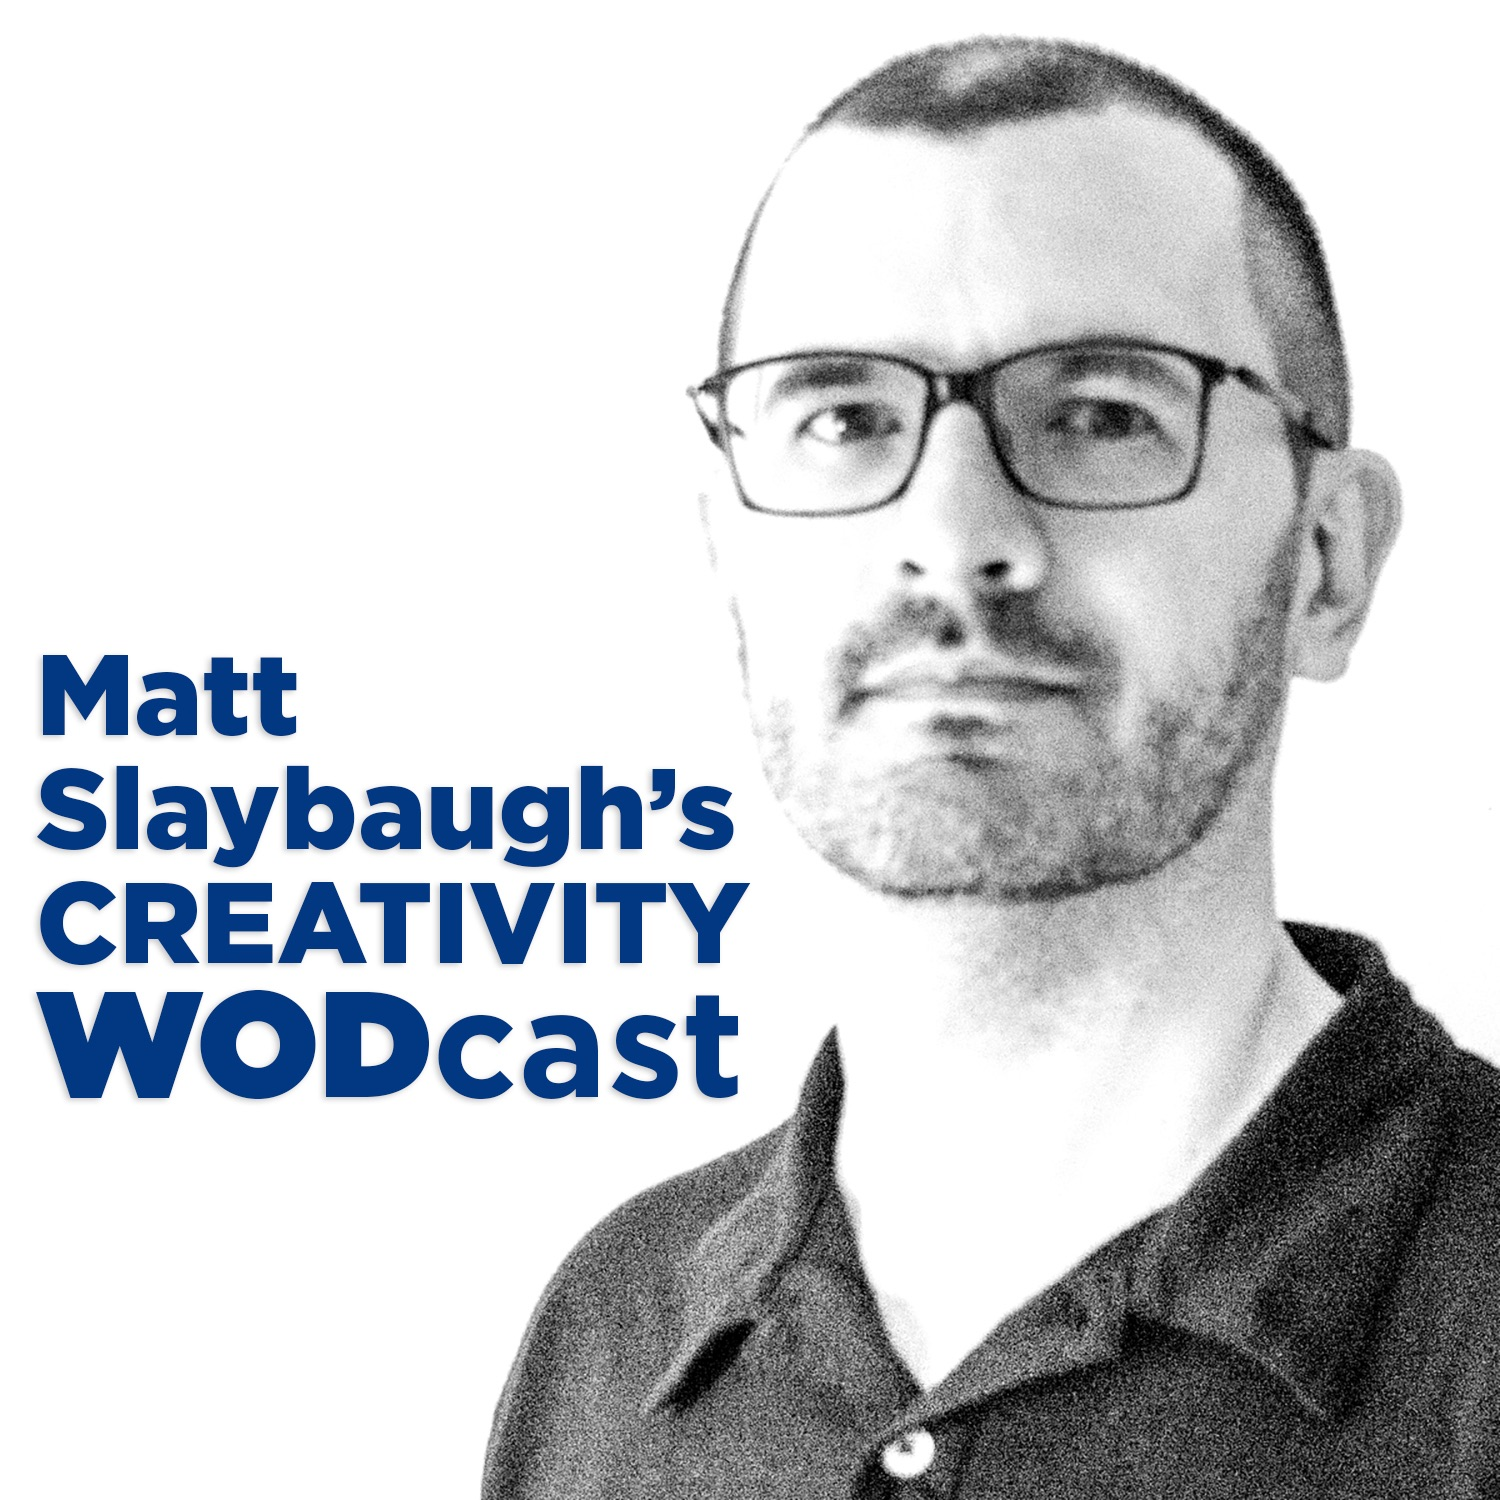 Creativity WODcast